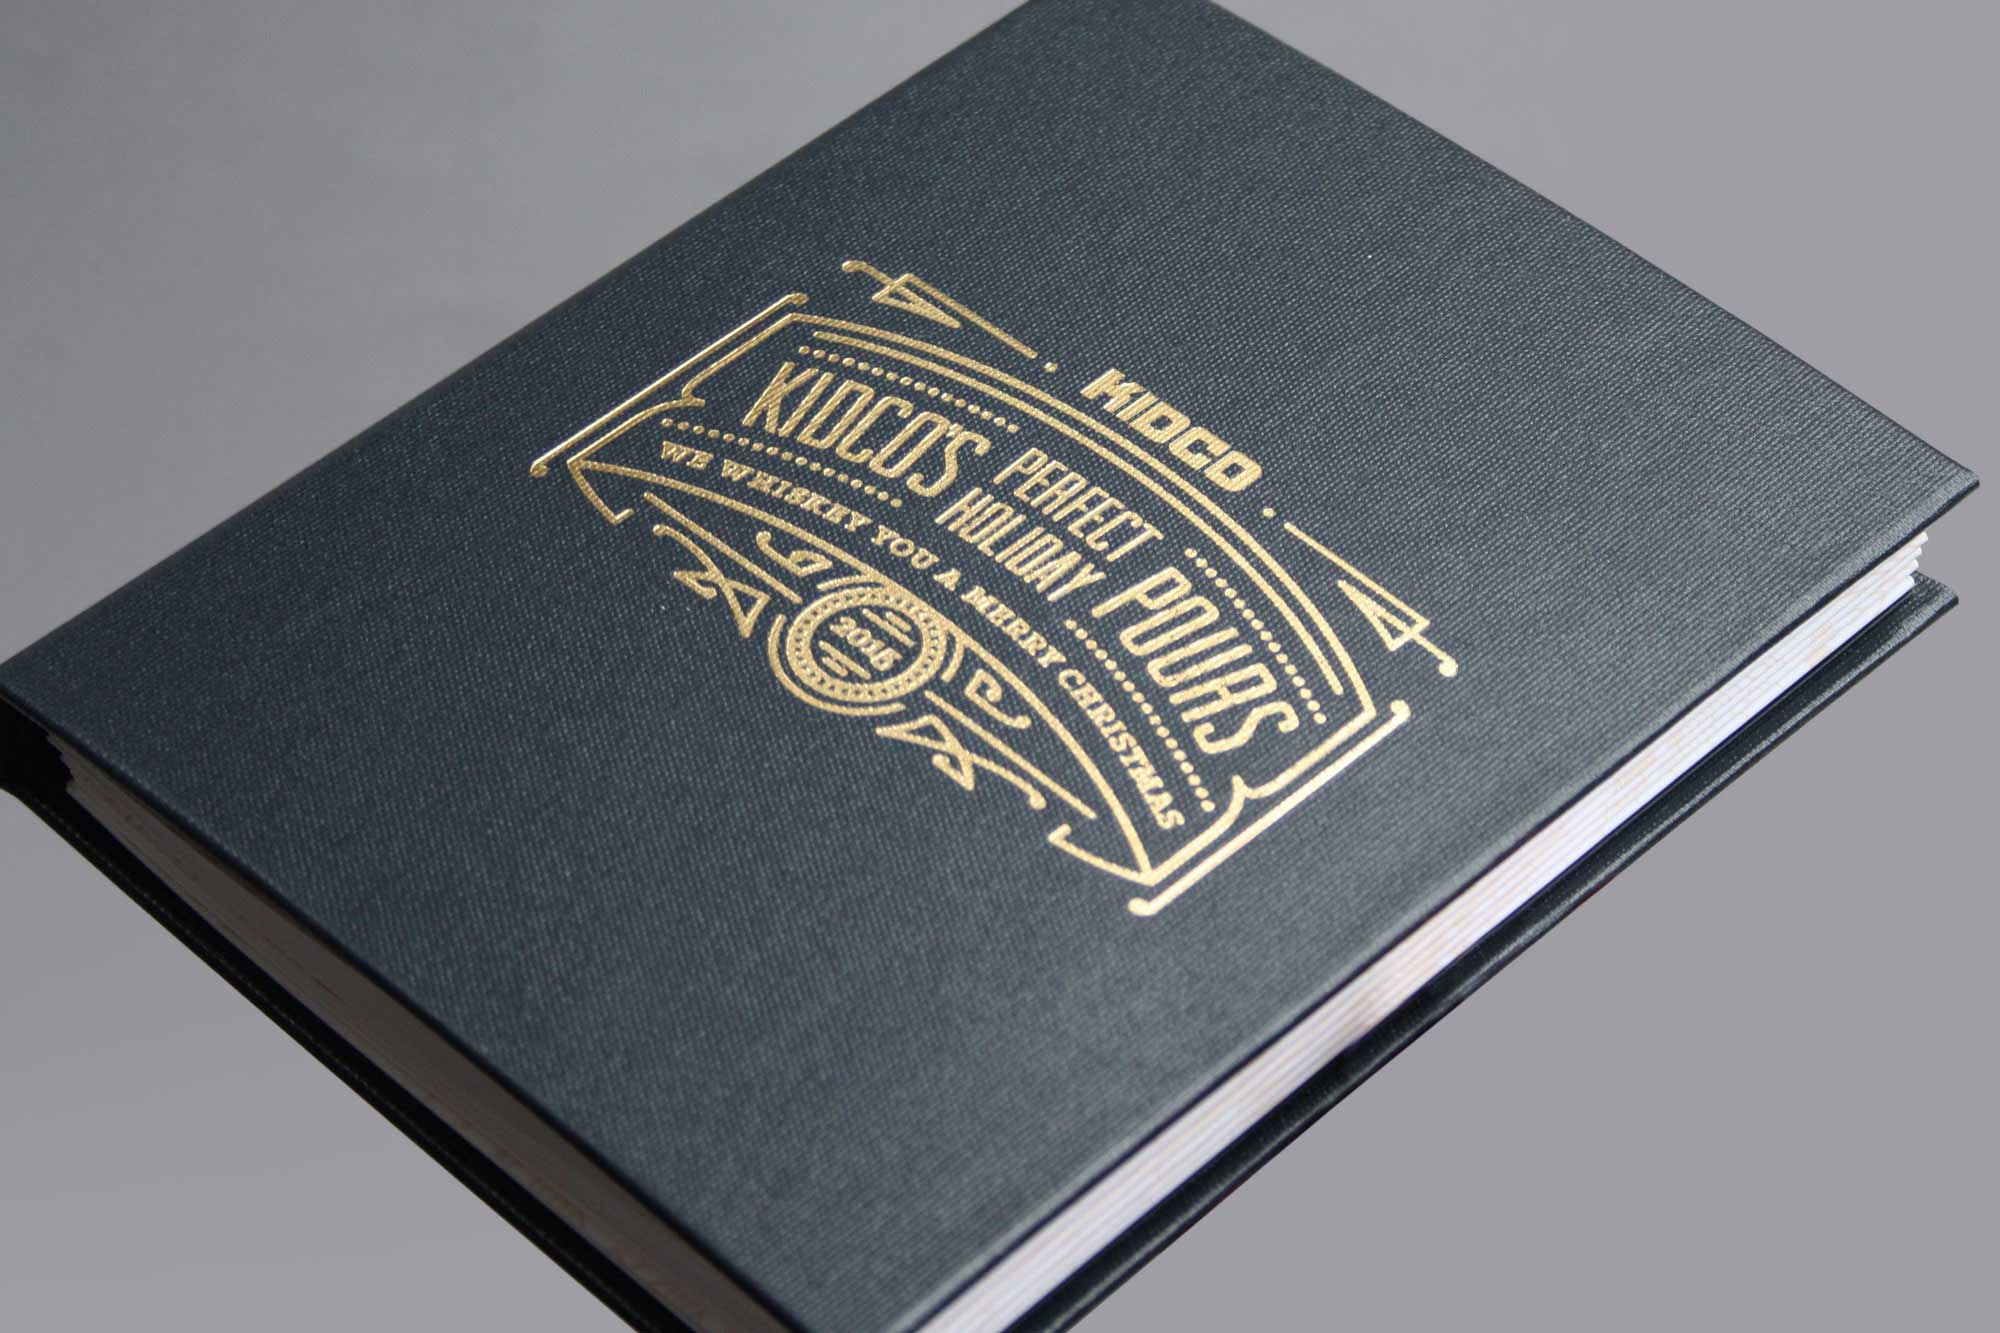 Custom corporate client gift whiskey cocktail book from Kidco construction in Calgary by Studio Forum